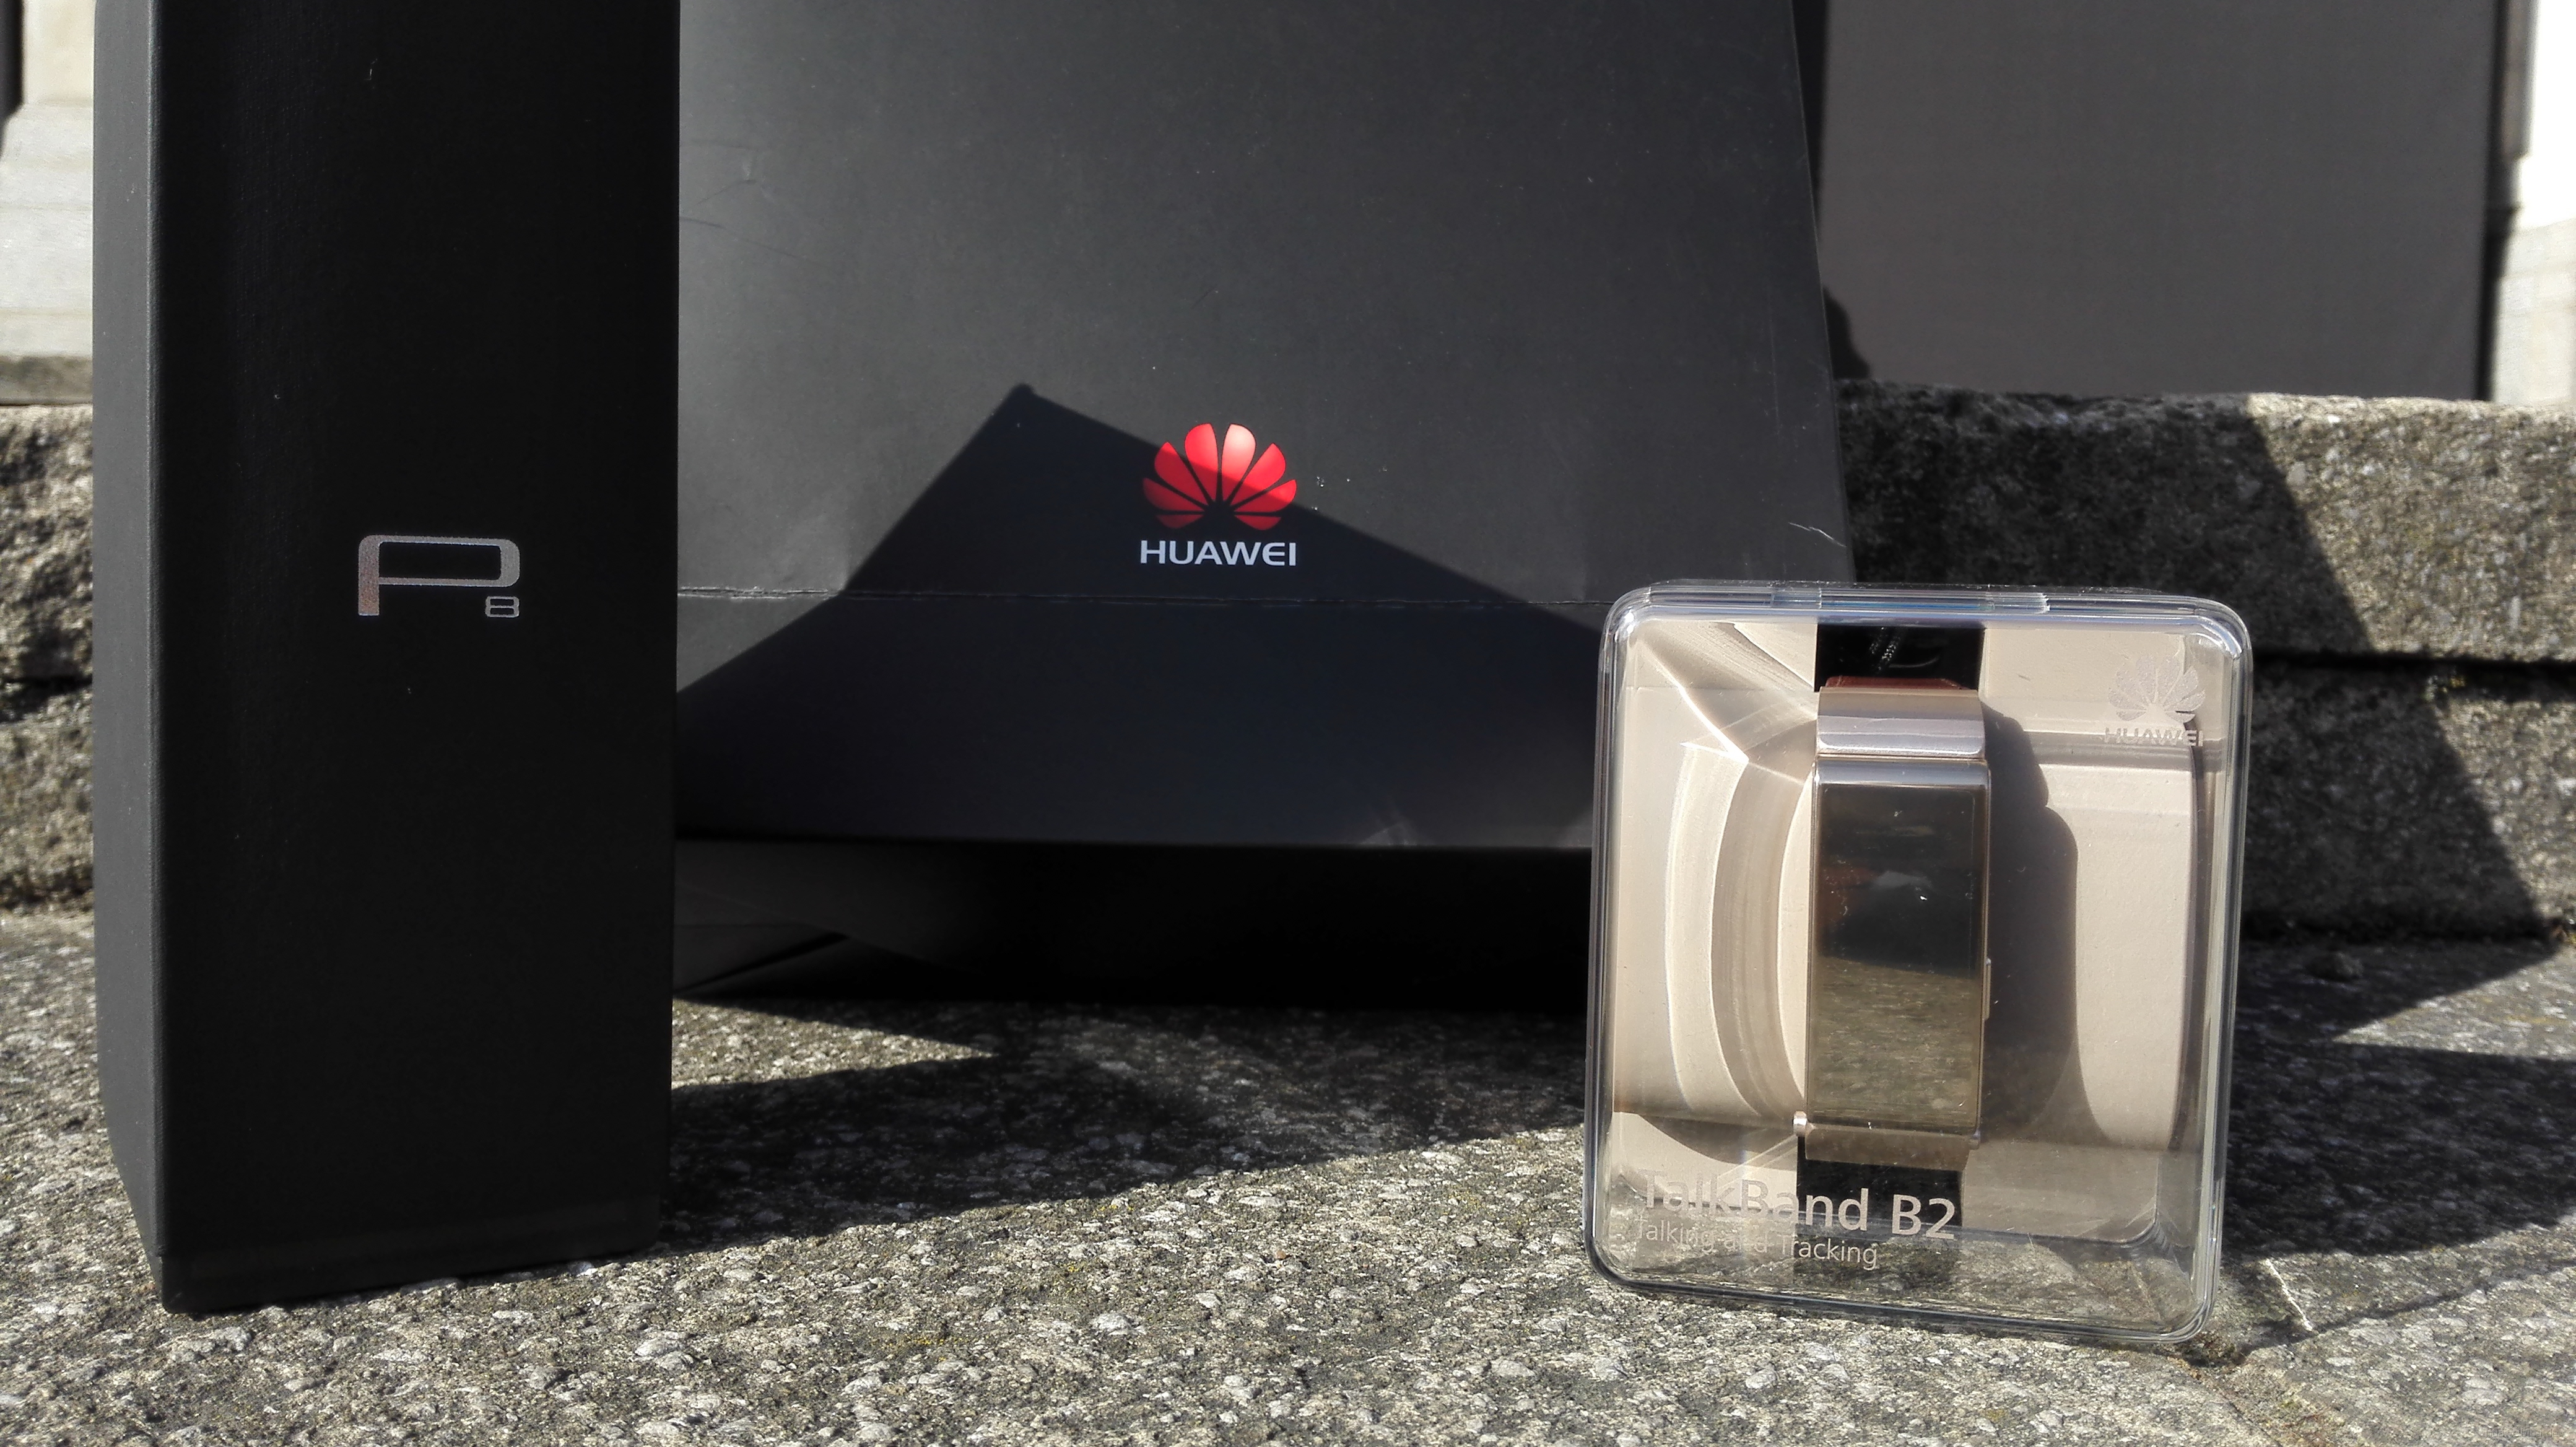 Huawei_P8_Event_London_2015_Giveaway